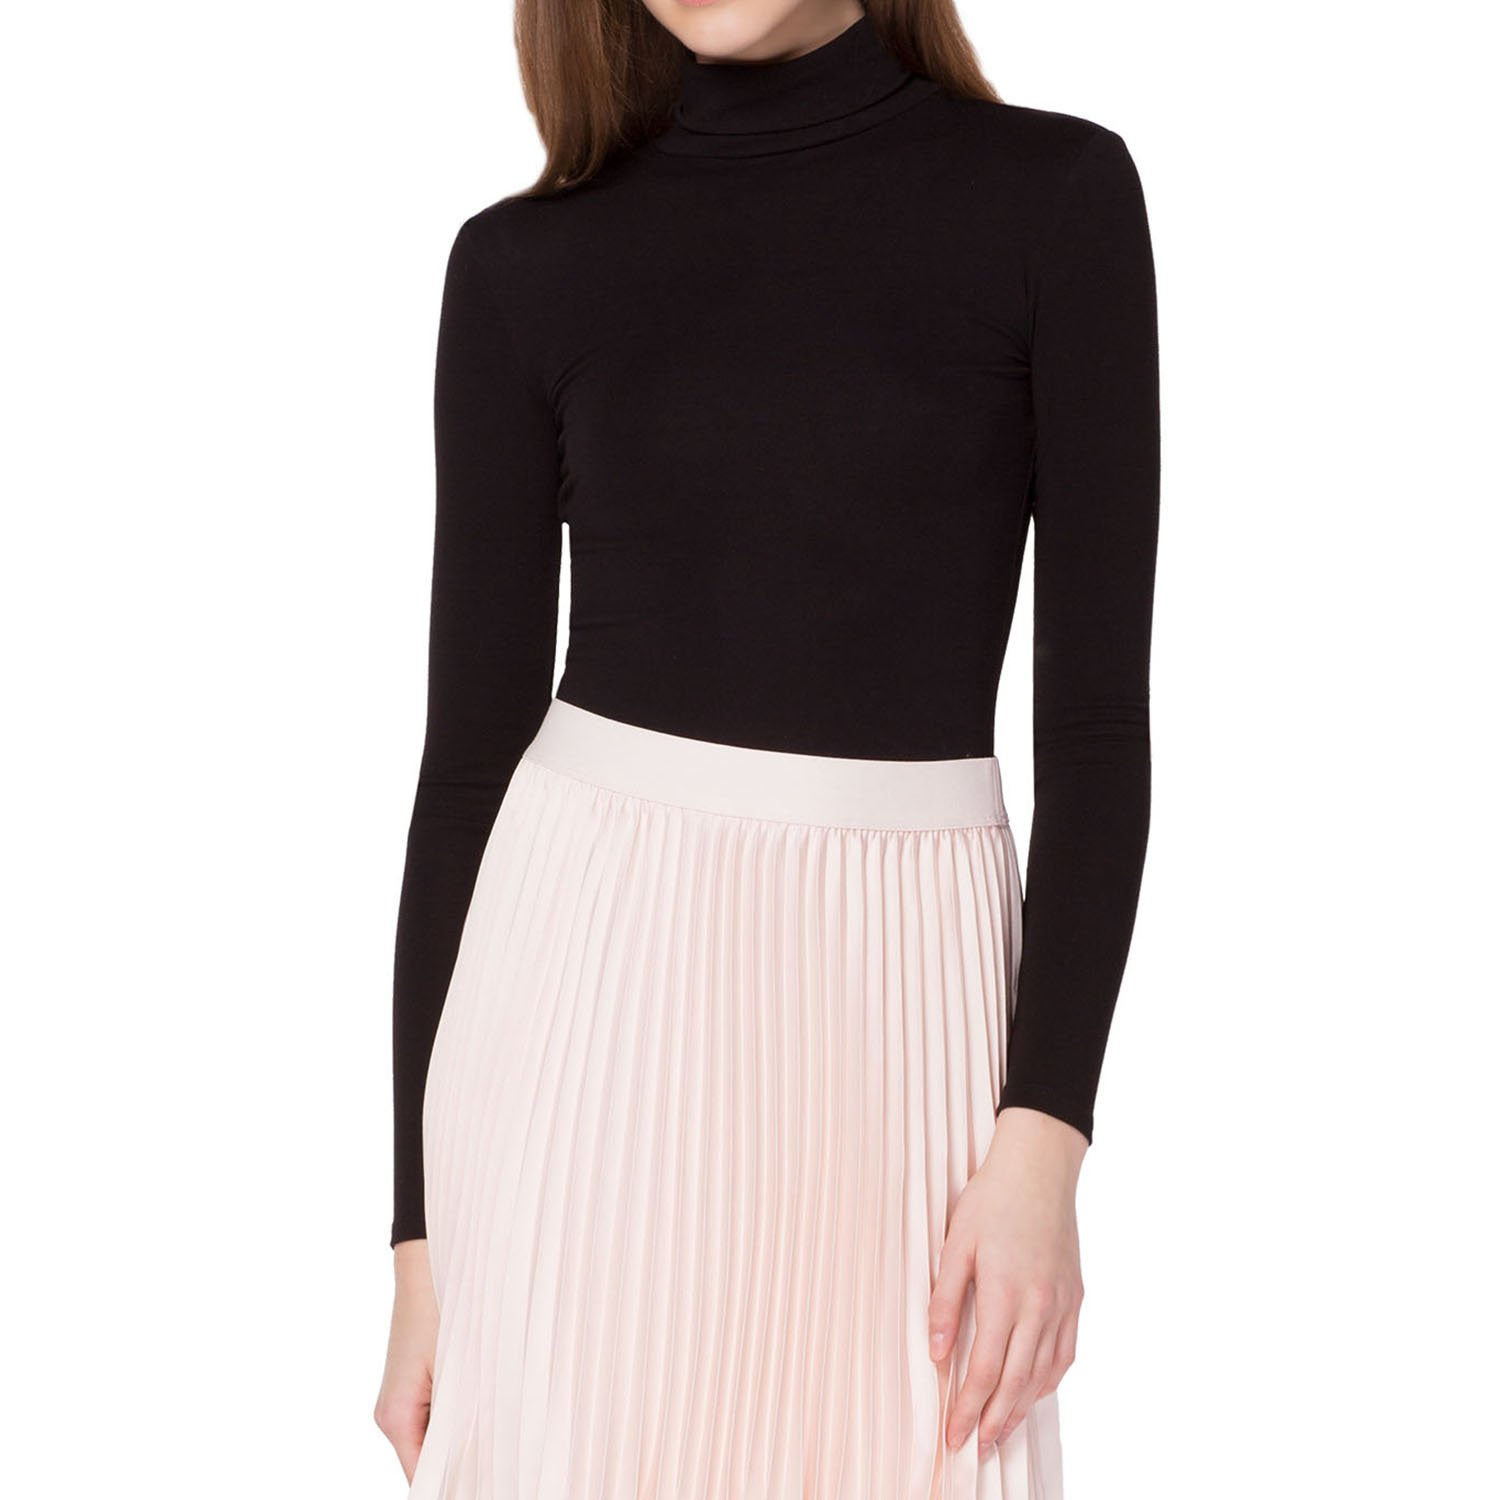 Kat & Emma Essential Super Soft Long Sleeve Fitted Turtle Neck Top (Black, Small)